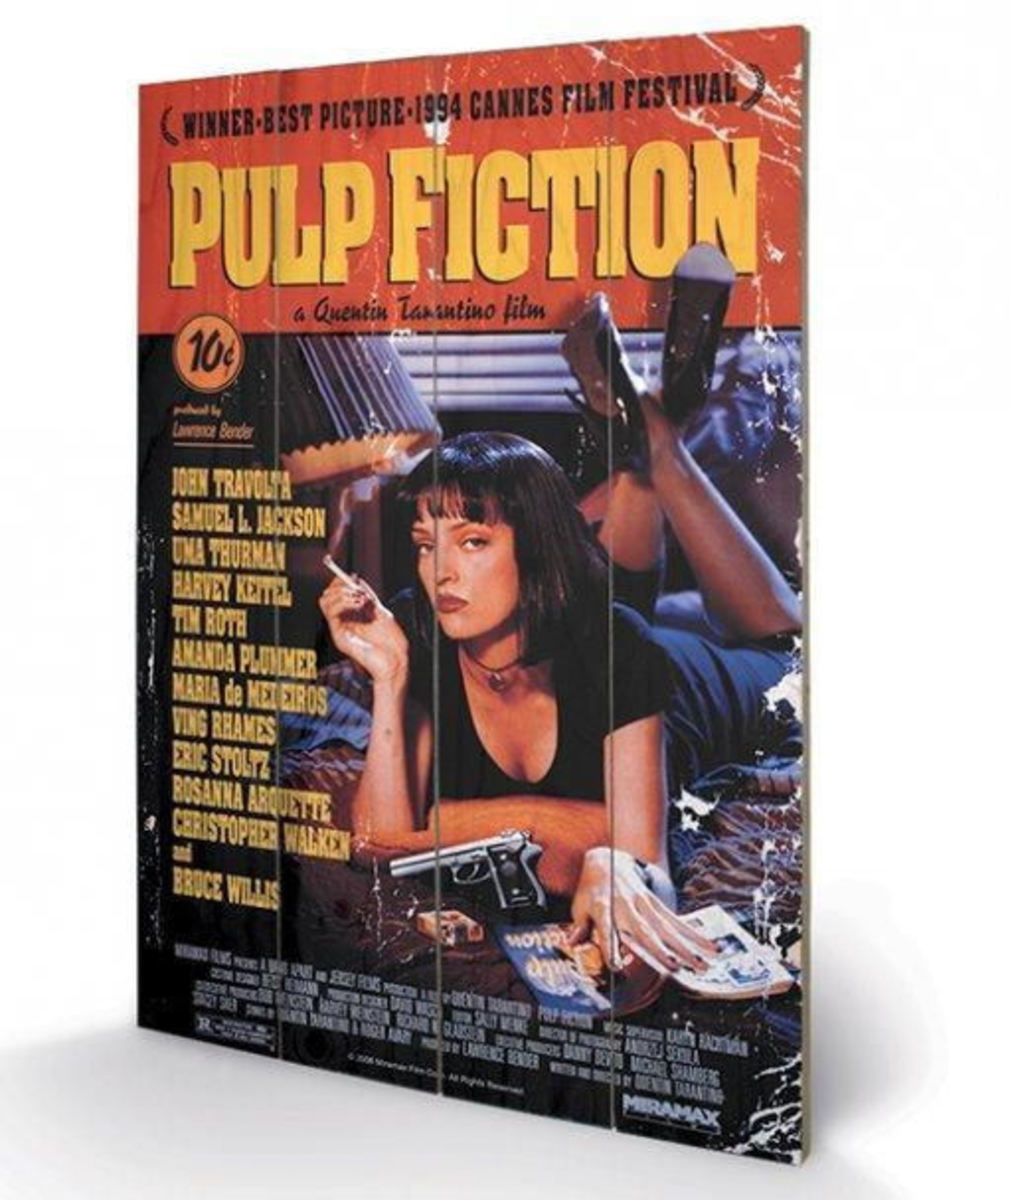 dřevěný obraz Pulp Fiction - (Cover) - PYRAMID POSTERS - SW10497P